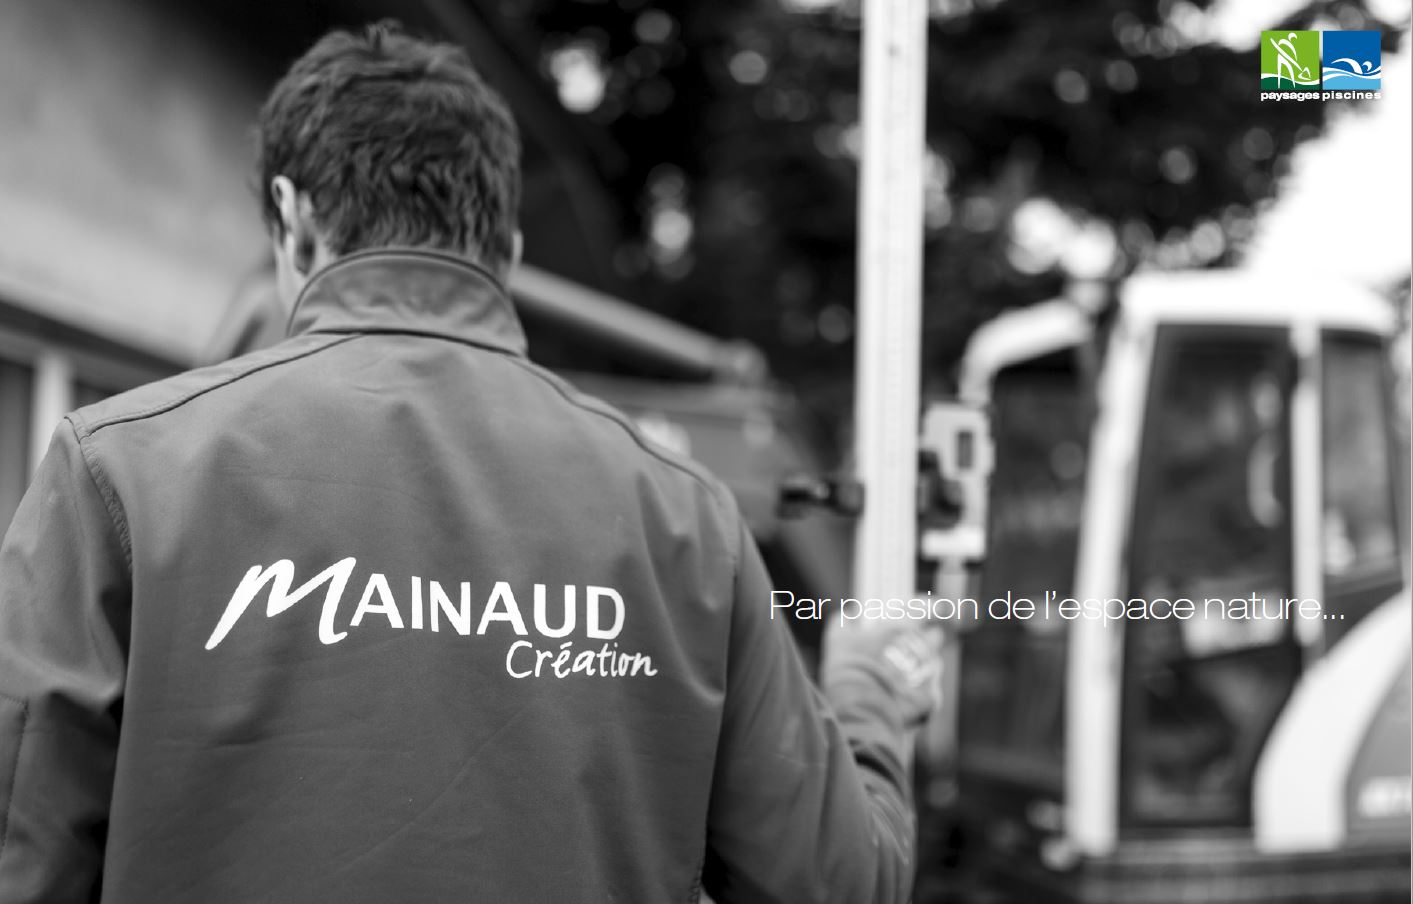 Photos d'illustration marketing Mainaud Creation Photographe Pays de Gex